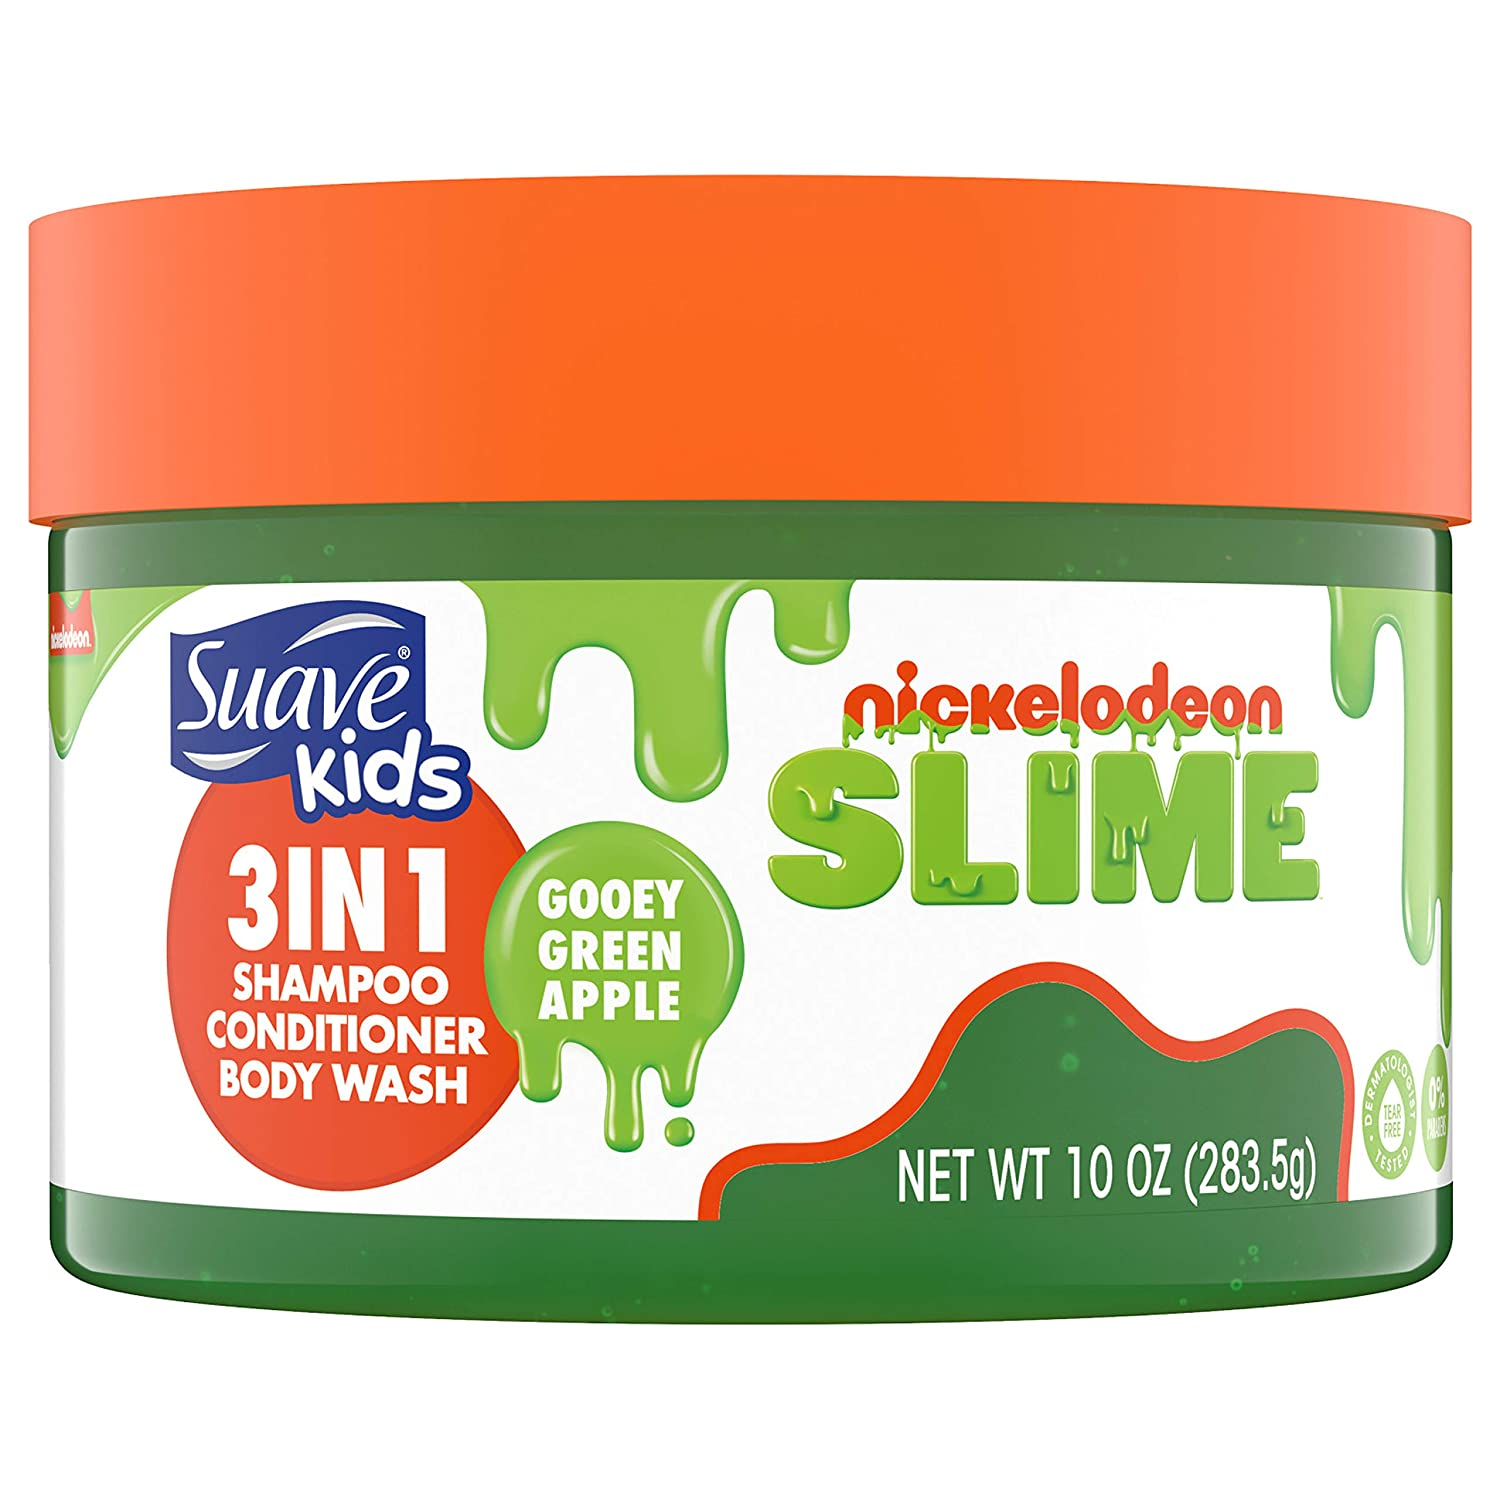 Suave Kids Shampoo, Conditioner, Body Wash 3 in 1 for Ease Gooey Green Apple Tear-Free 10 oz (10079400470390)